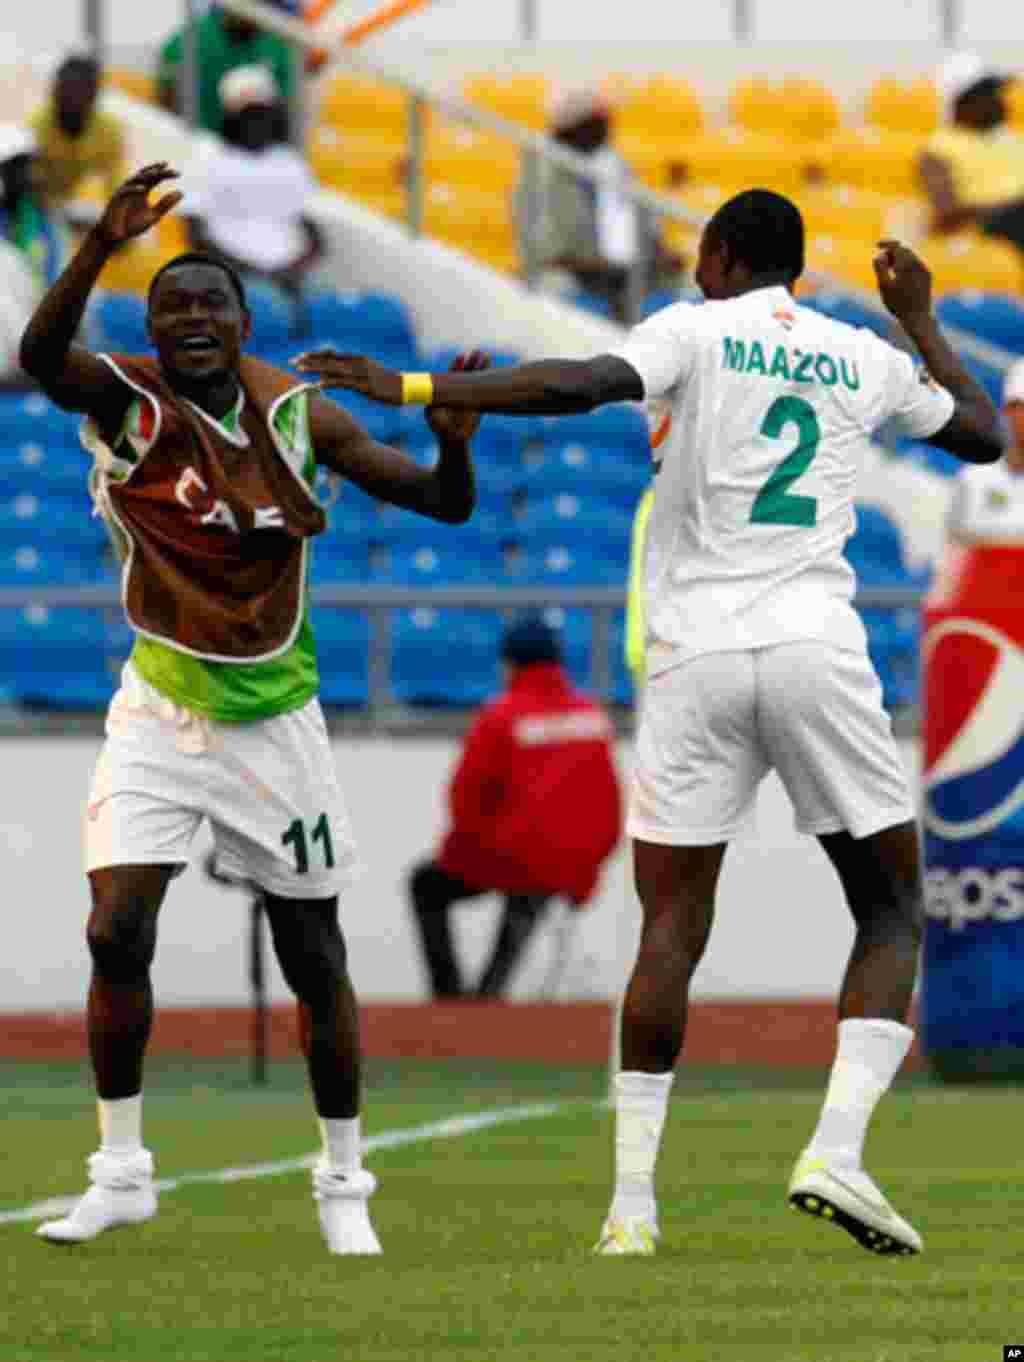 Niger's Moussa celebrates his goal against Tunisia with Allagui during their African Cup of Nations soccer match in Libreville